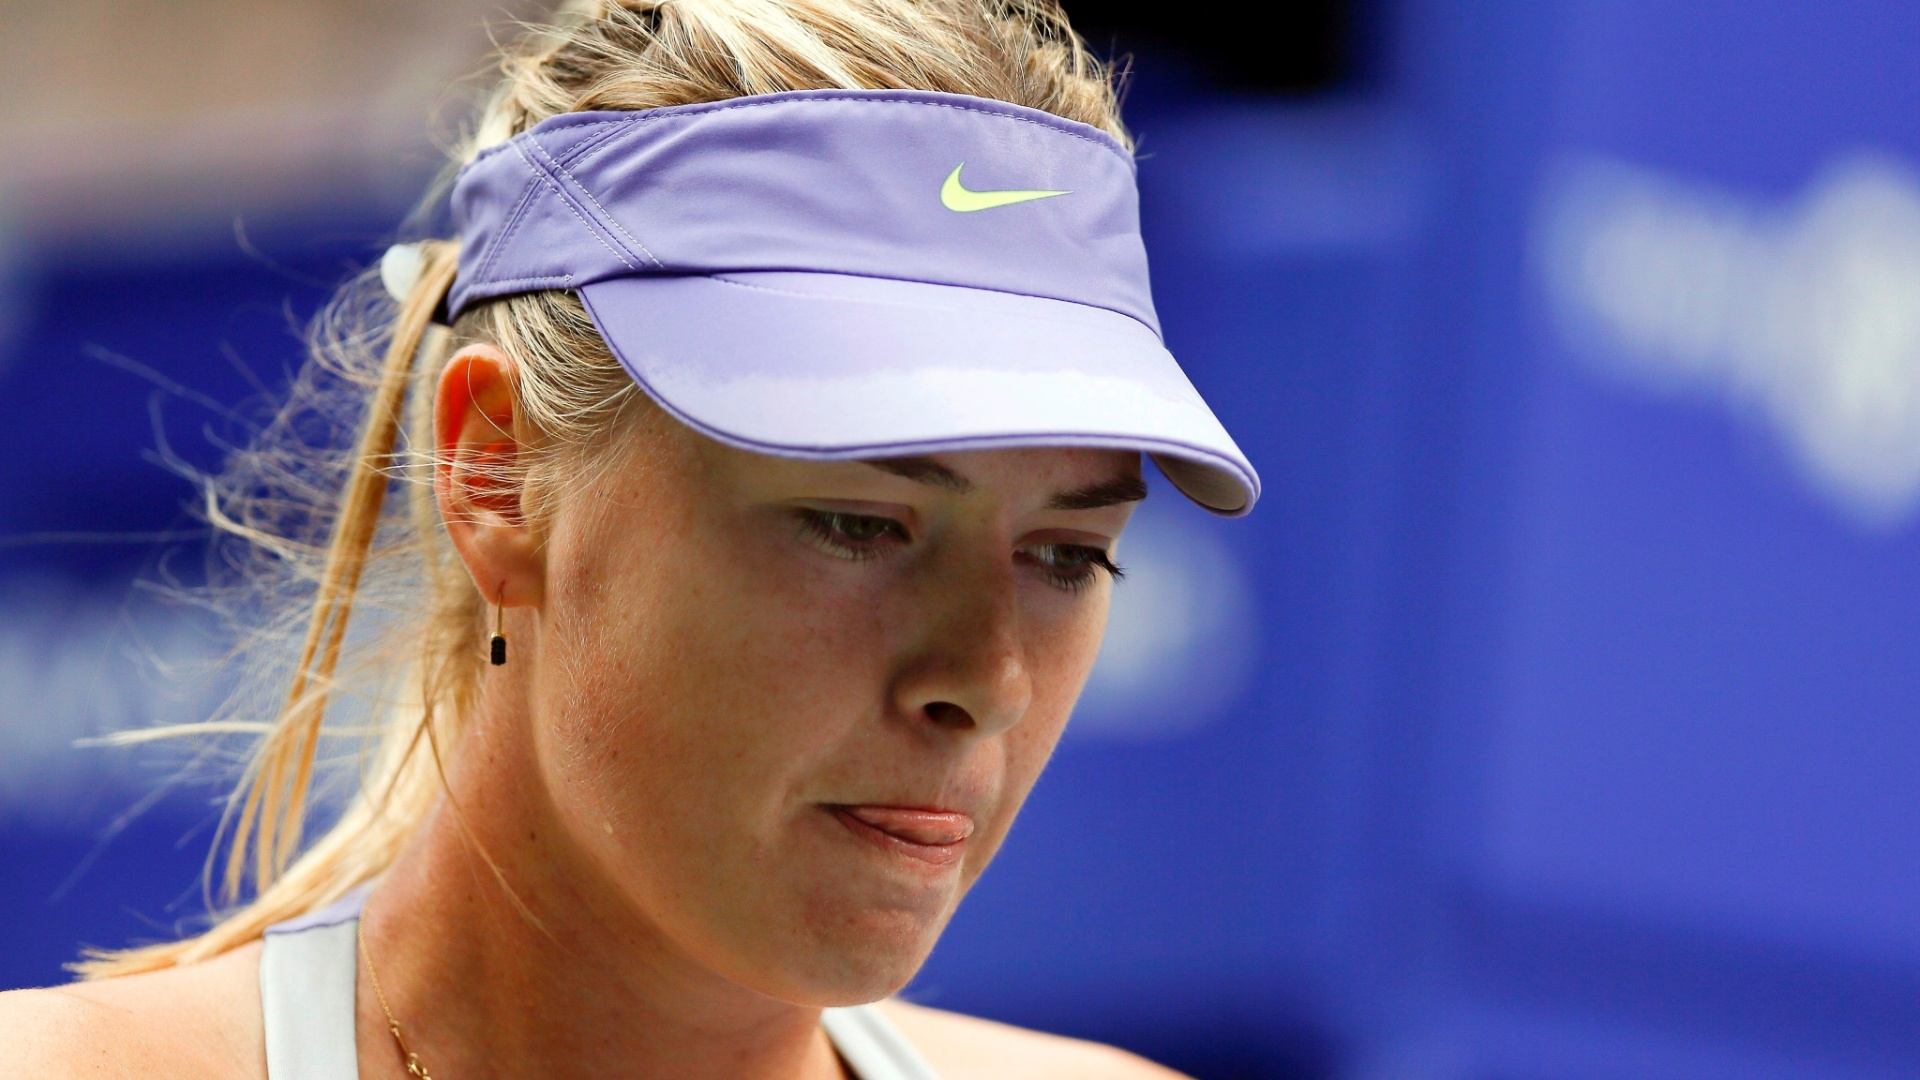 Sharapova foi eliminada nas quartas de final do WTA de Tquio